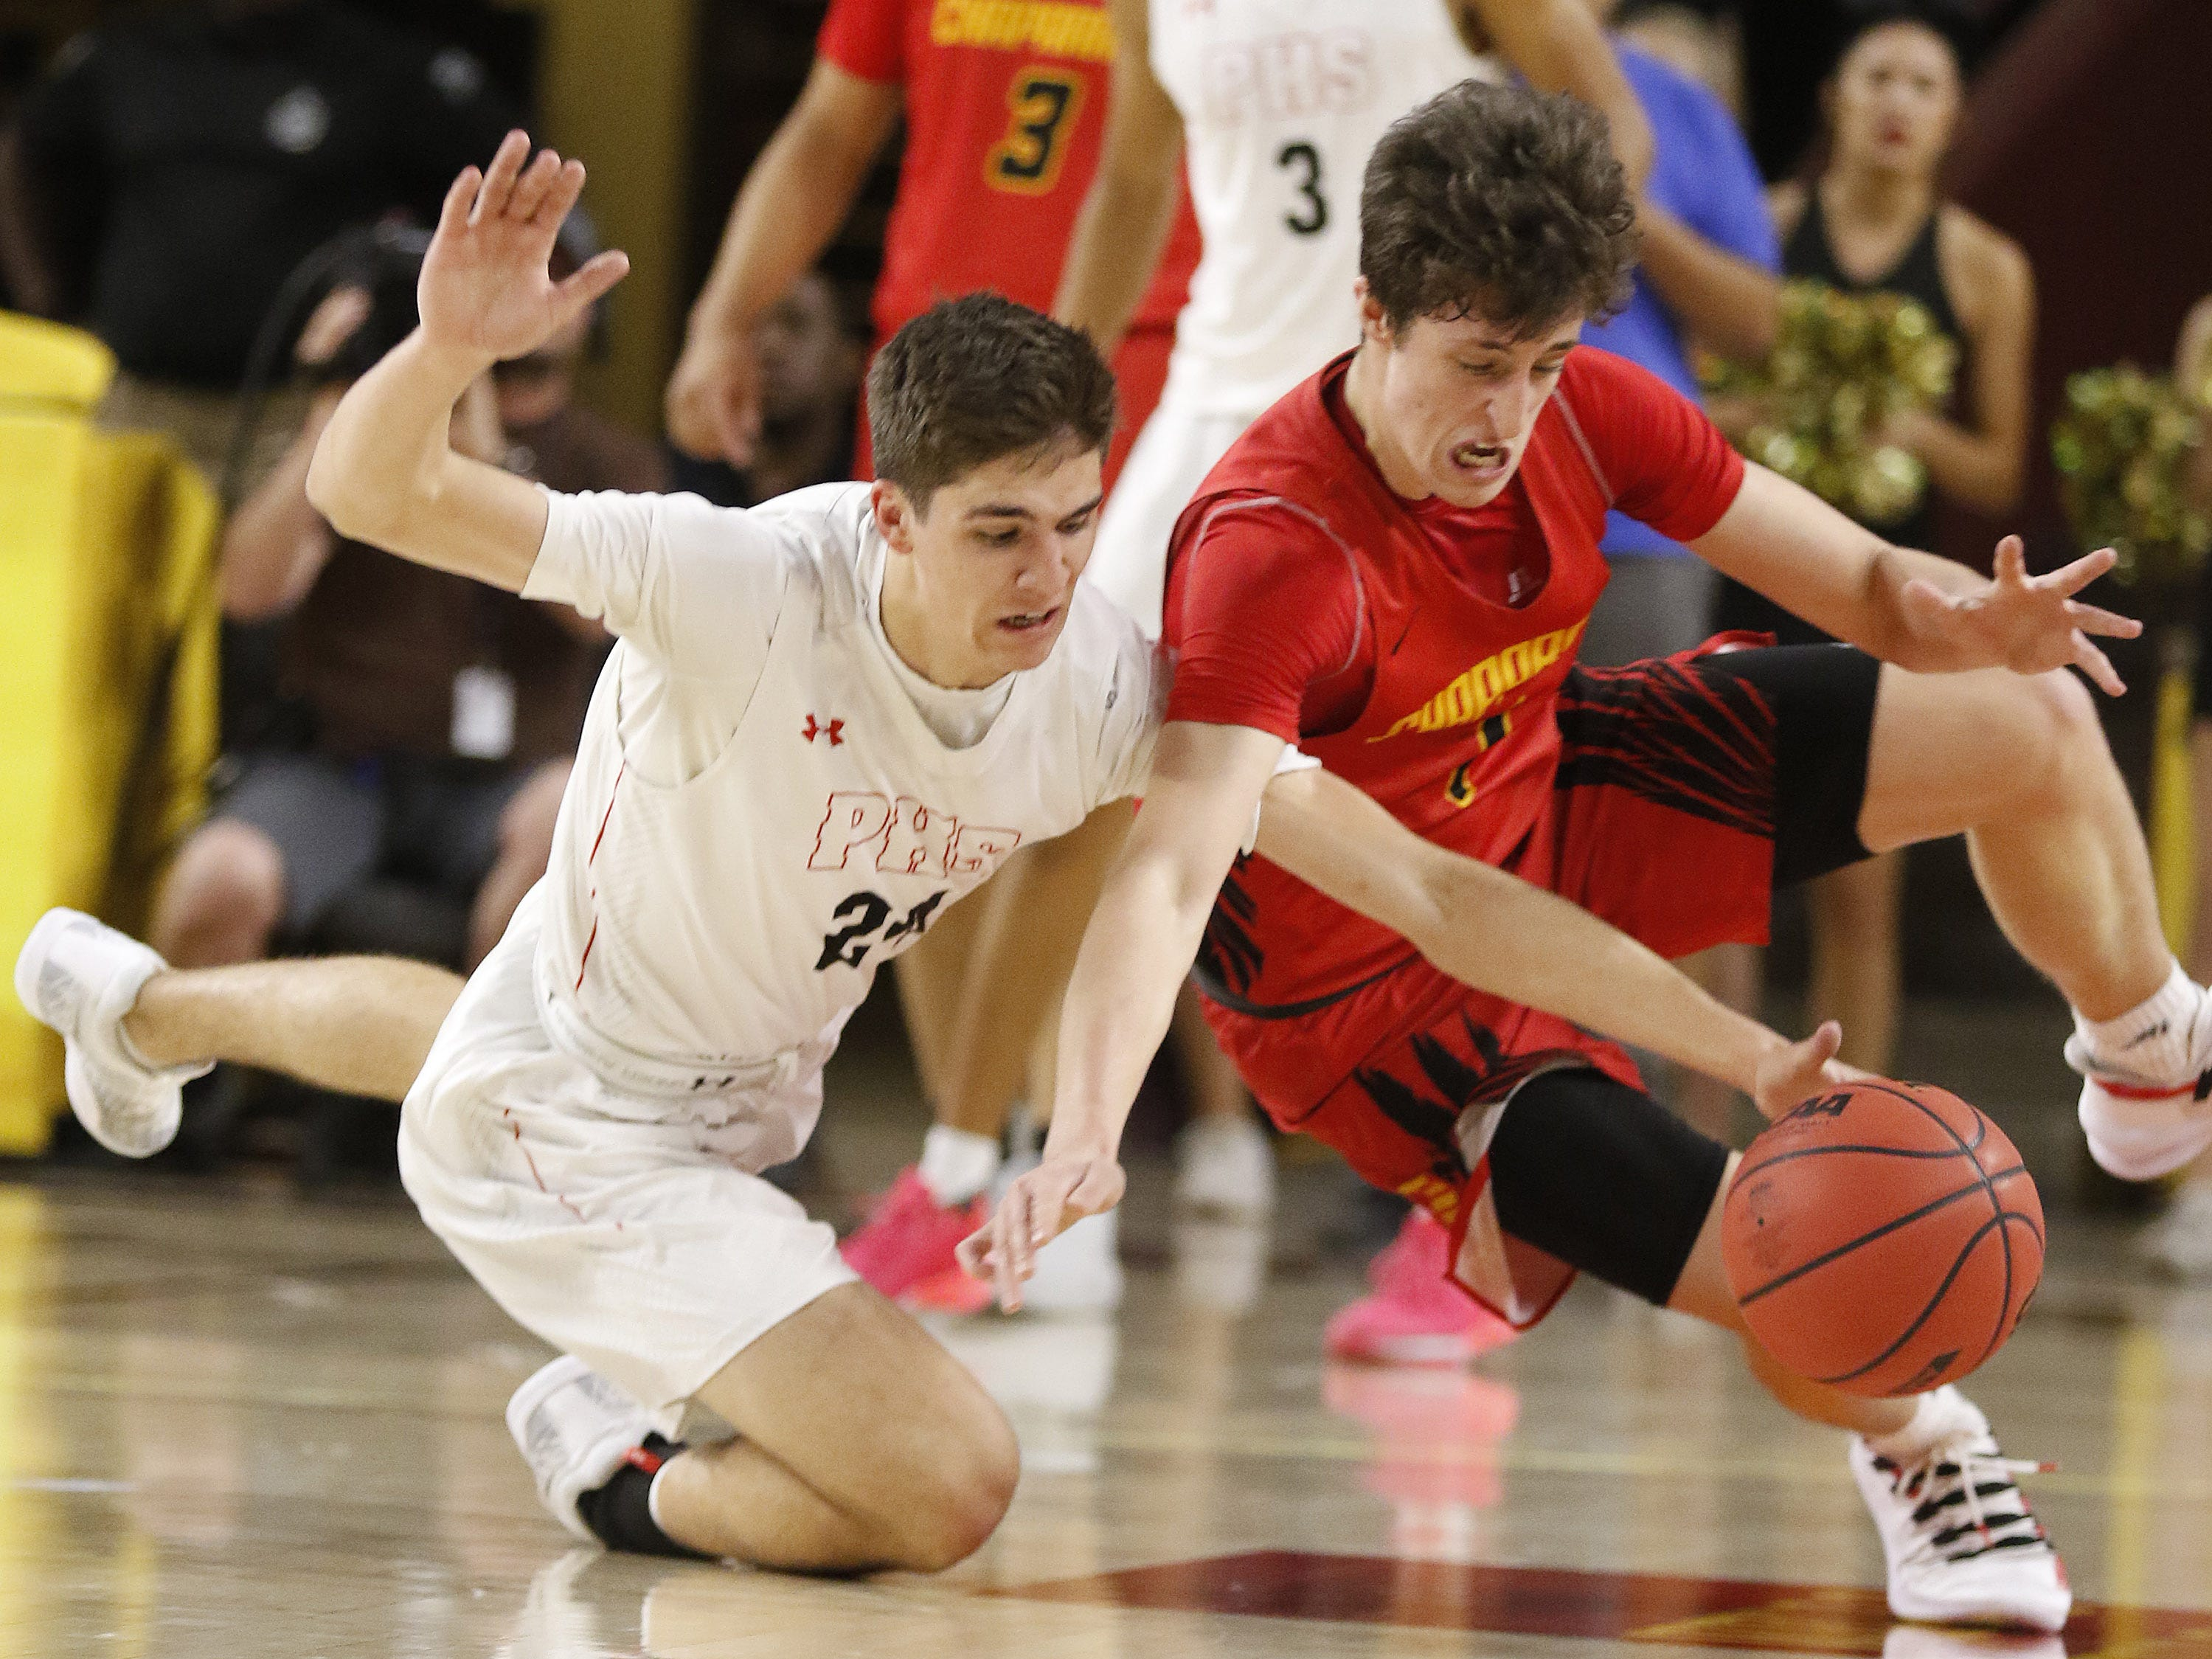 Pinnacle's Trent Brown (24) battles for a loose ball with Chaparral's Alem Huseinovic (1) during the 6A Boys State Championship at Wells Fargo Arena in Tempe Tuesday, Feb 26, 2019.